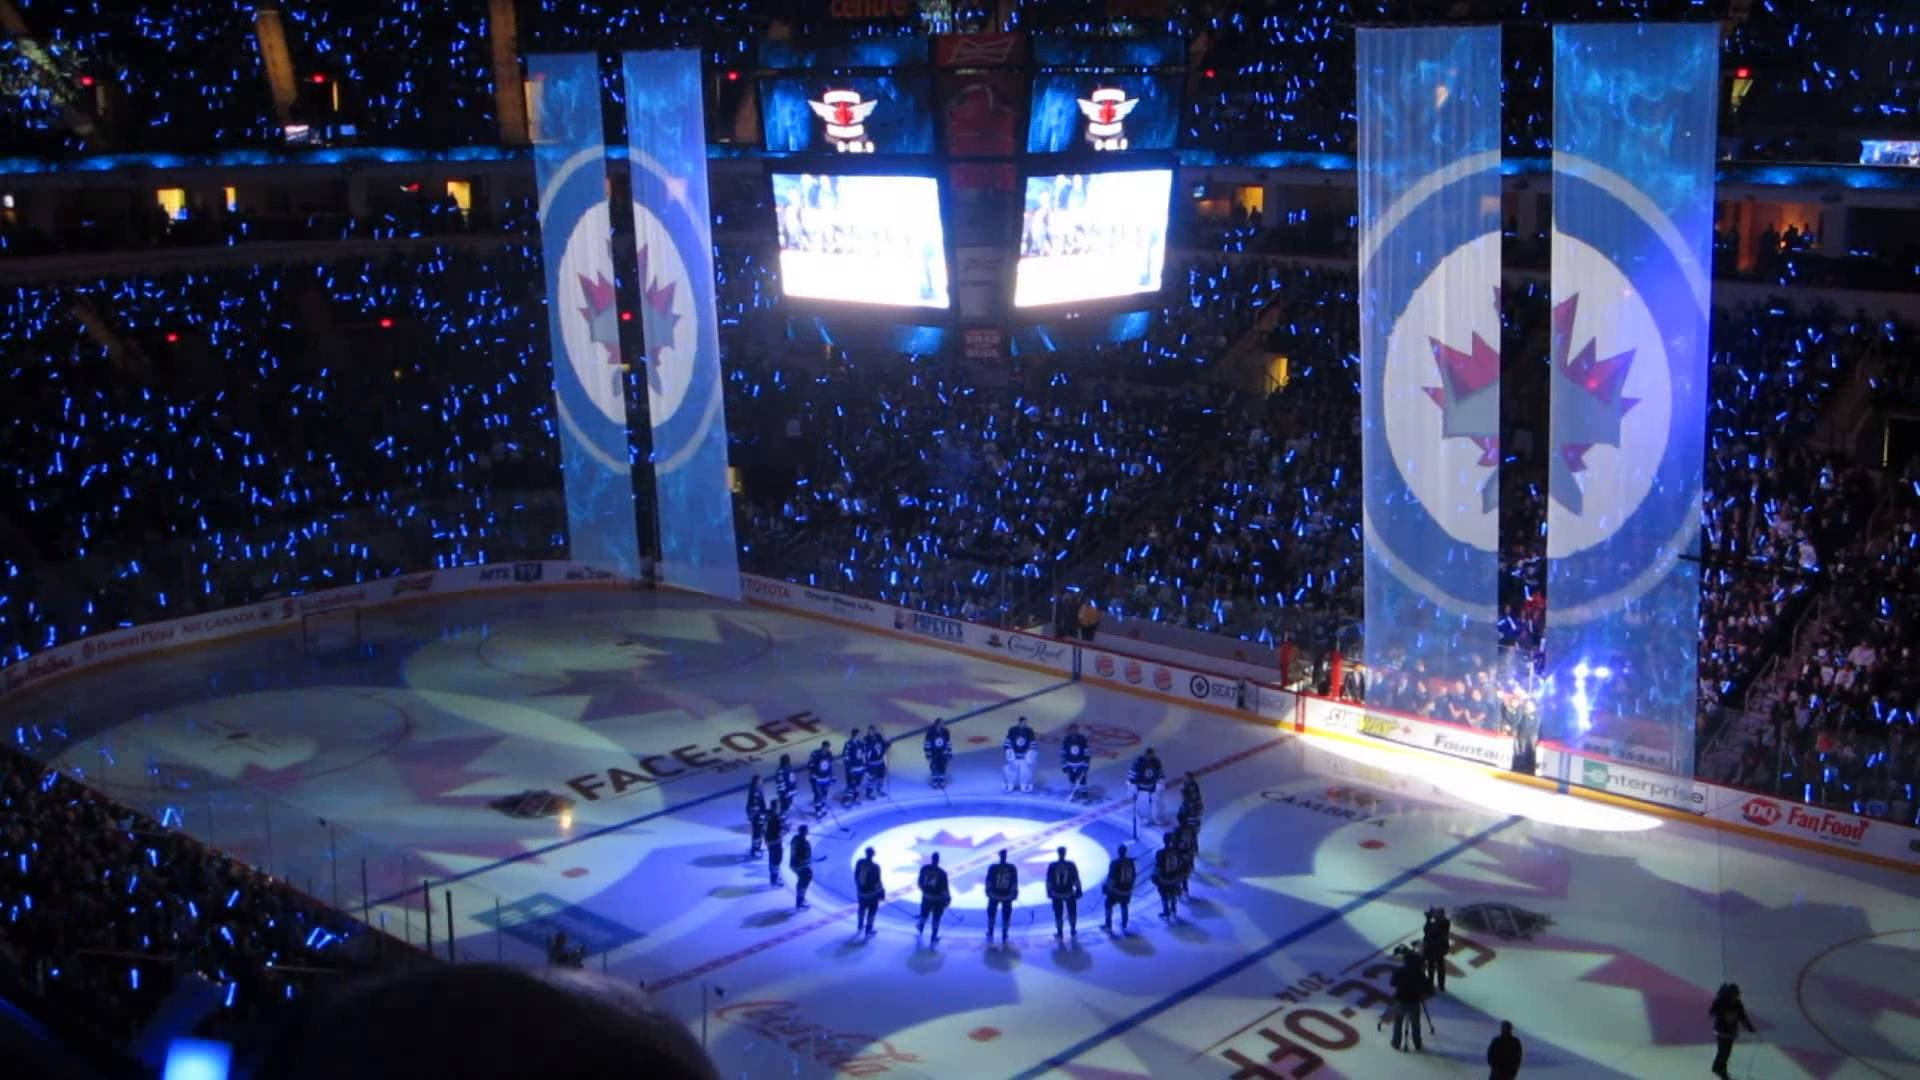 Winnipeg Jets Wallpaper 15   1920 X 1080 stmednet 1920x1080